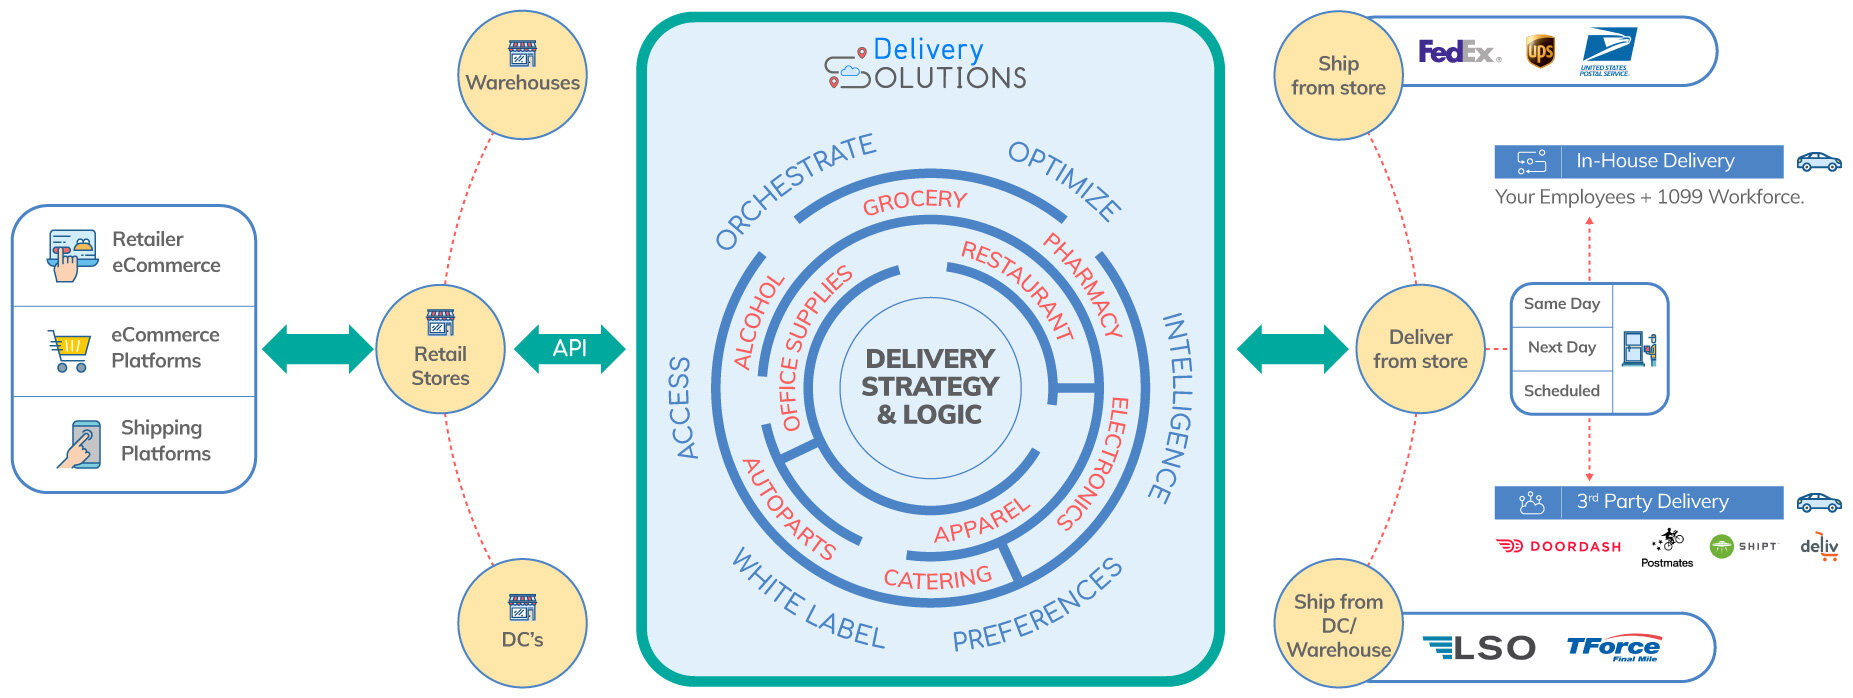 DELIVERY SOLUTIONS PRODUCTS AND SERVICES CAN SUPPORT YOUR VISION.